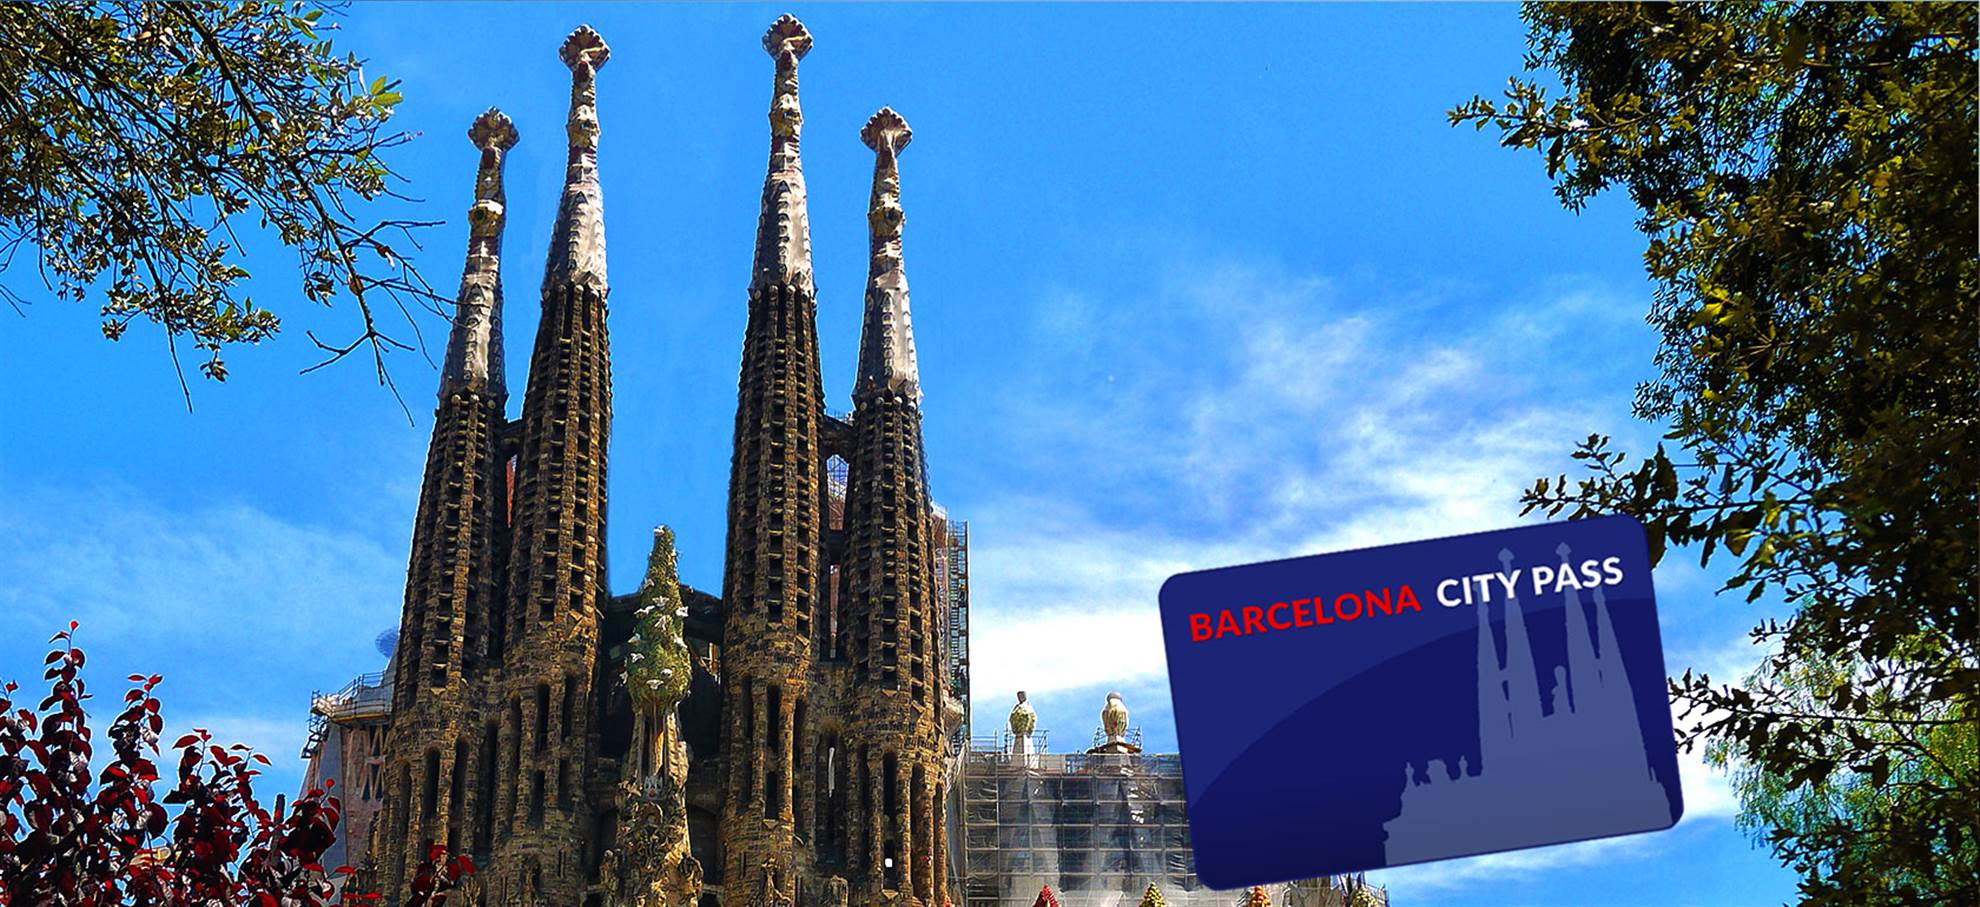 Barcelona City Pass (Incl. Sagrada Familia)